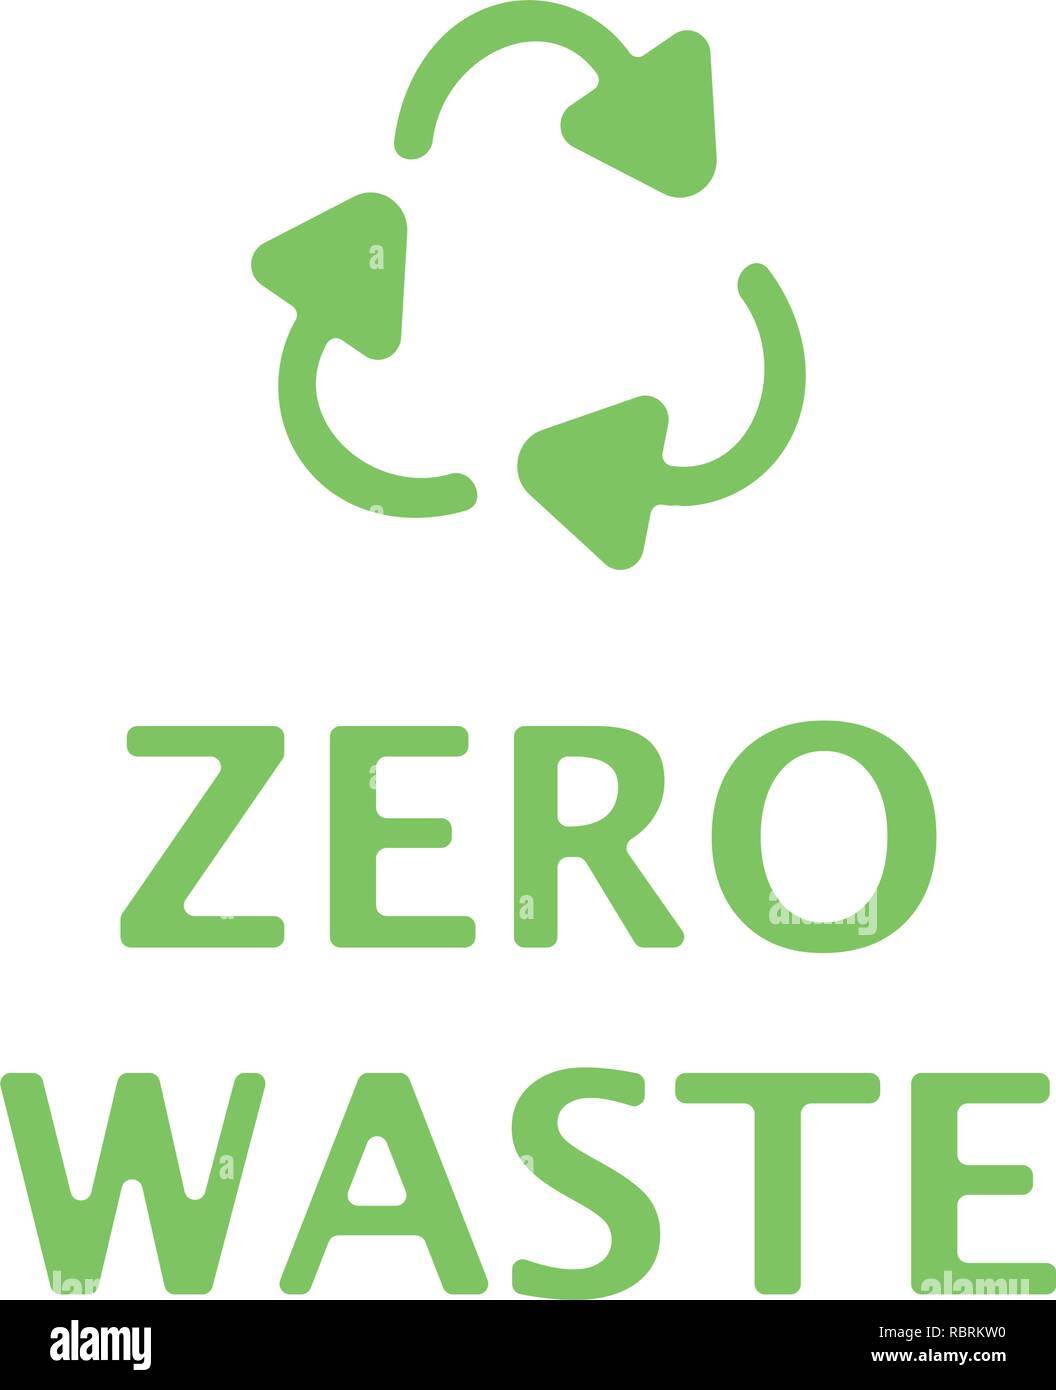 Zero waste text with green recycling sign isolated on white background. Zero landfill concept illustration flat style - Stock Vector